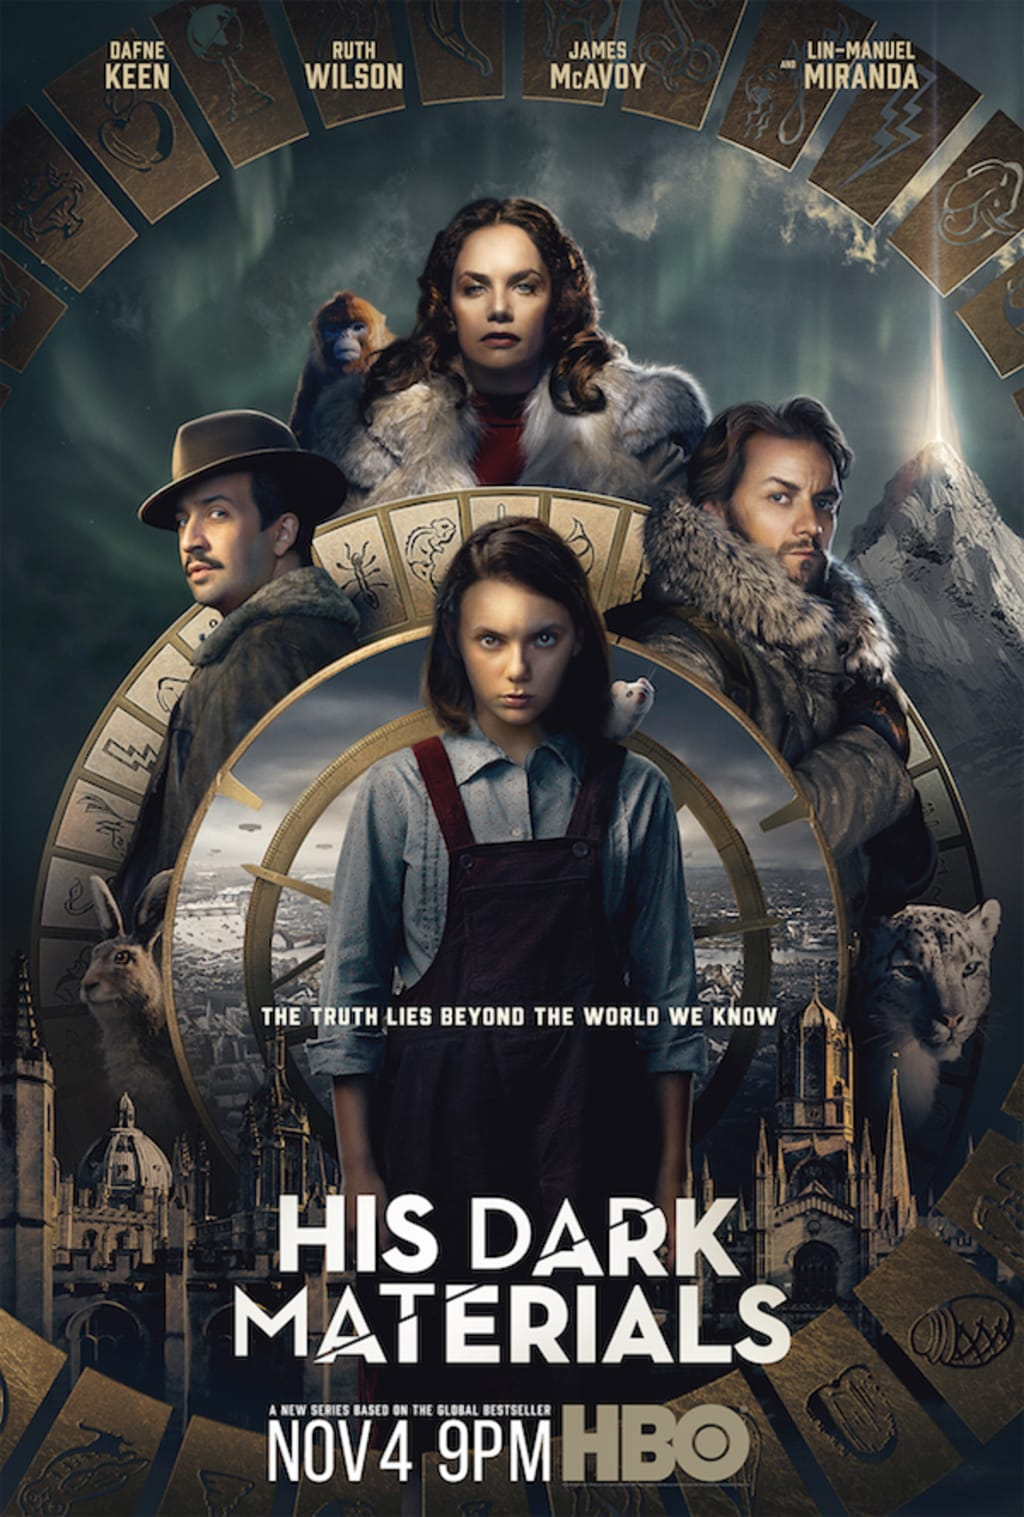 Review of 'His Dark Materials' 1.4